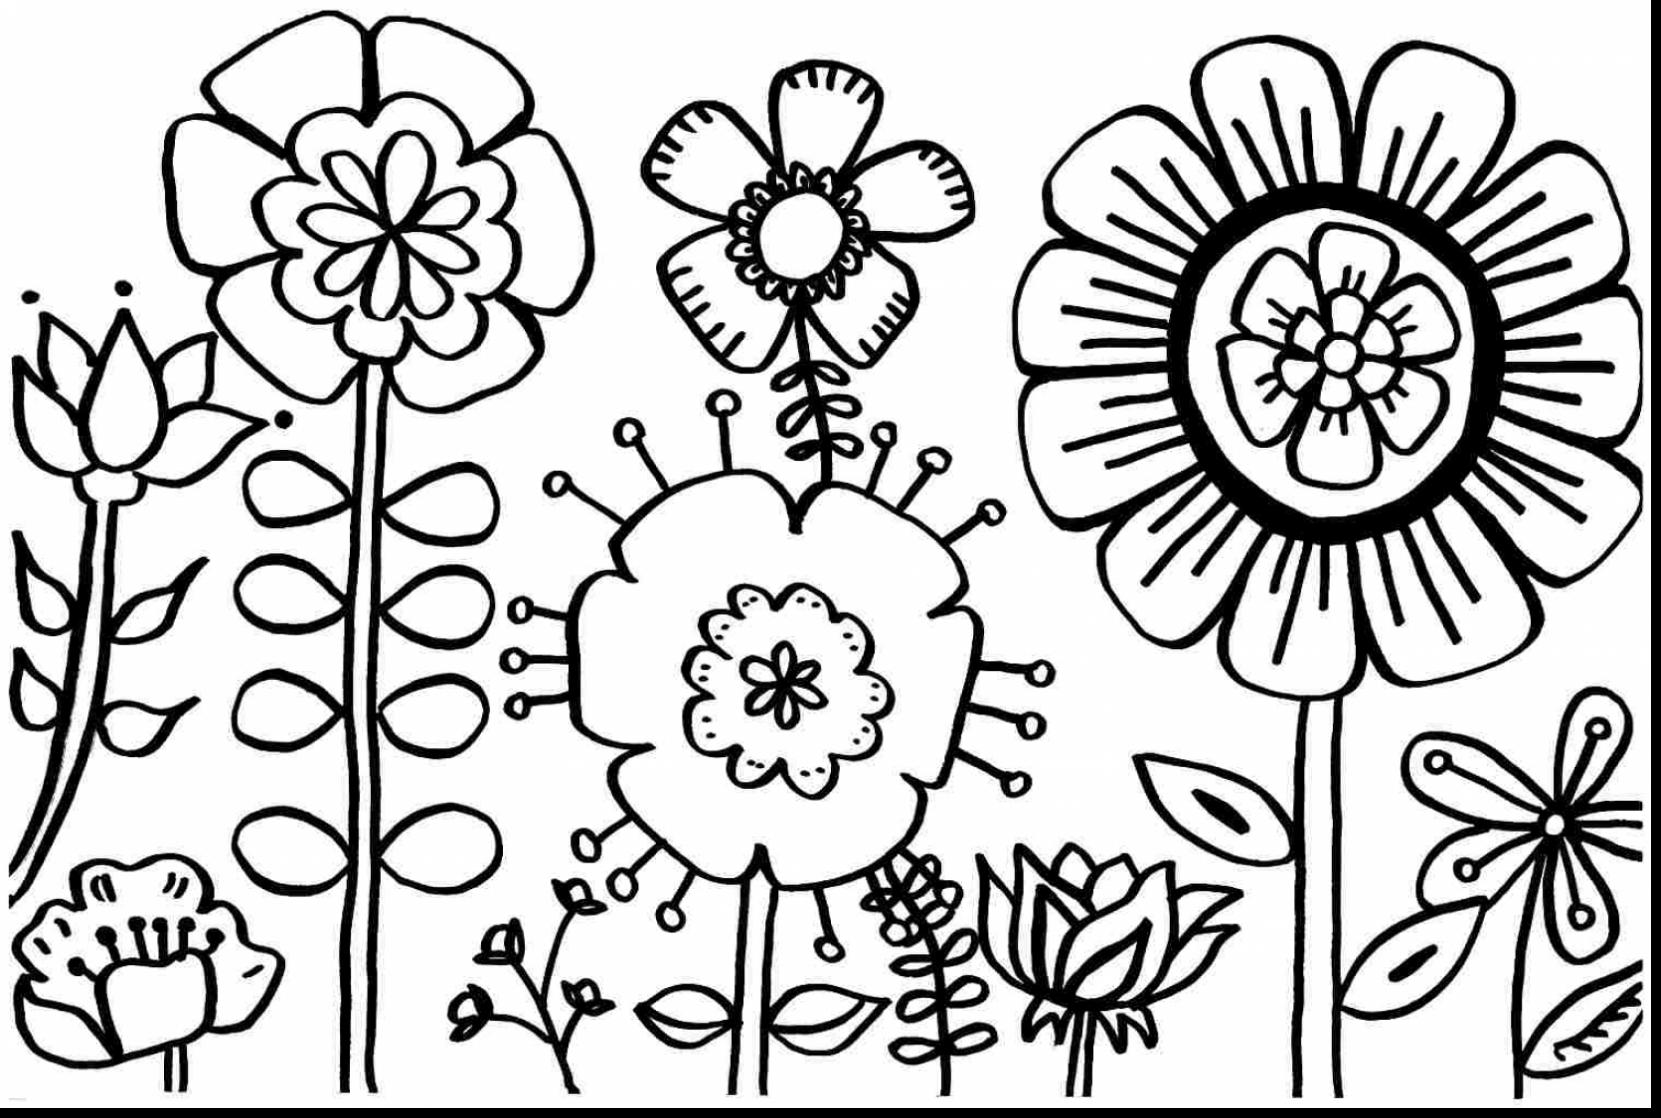 Spring Flowers Clipart Black And White | Free download best ...